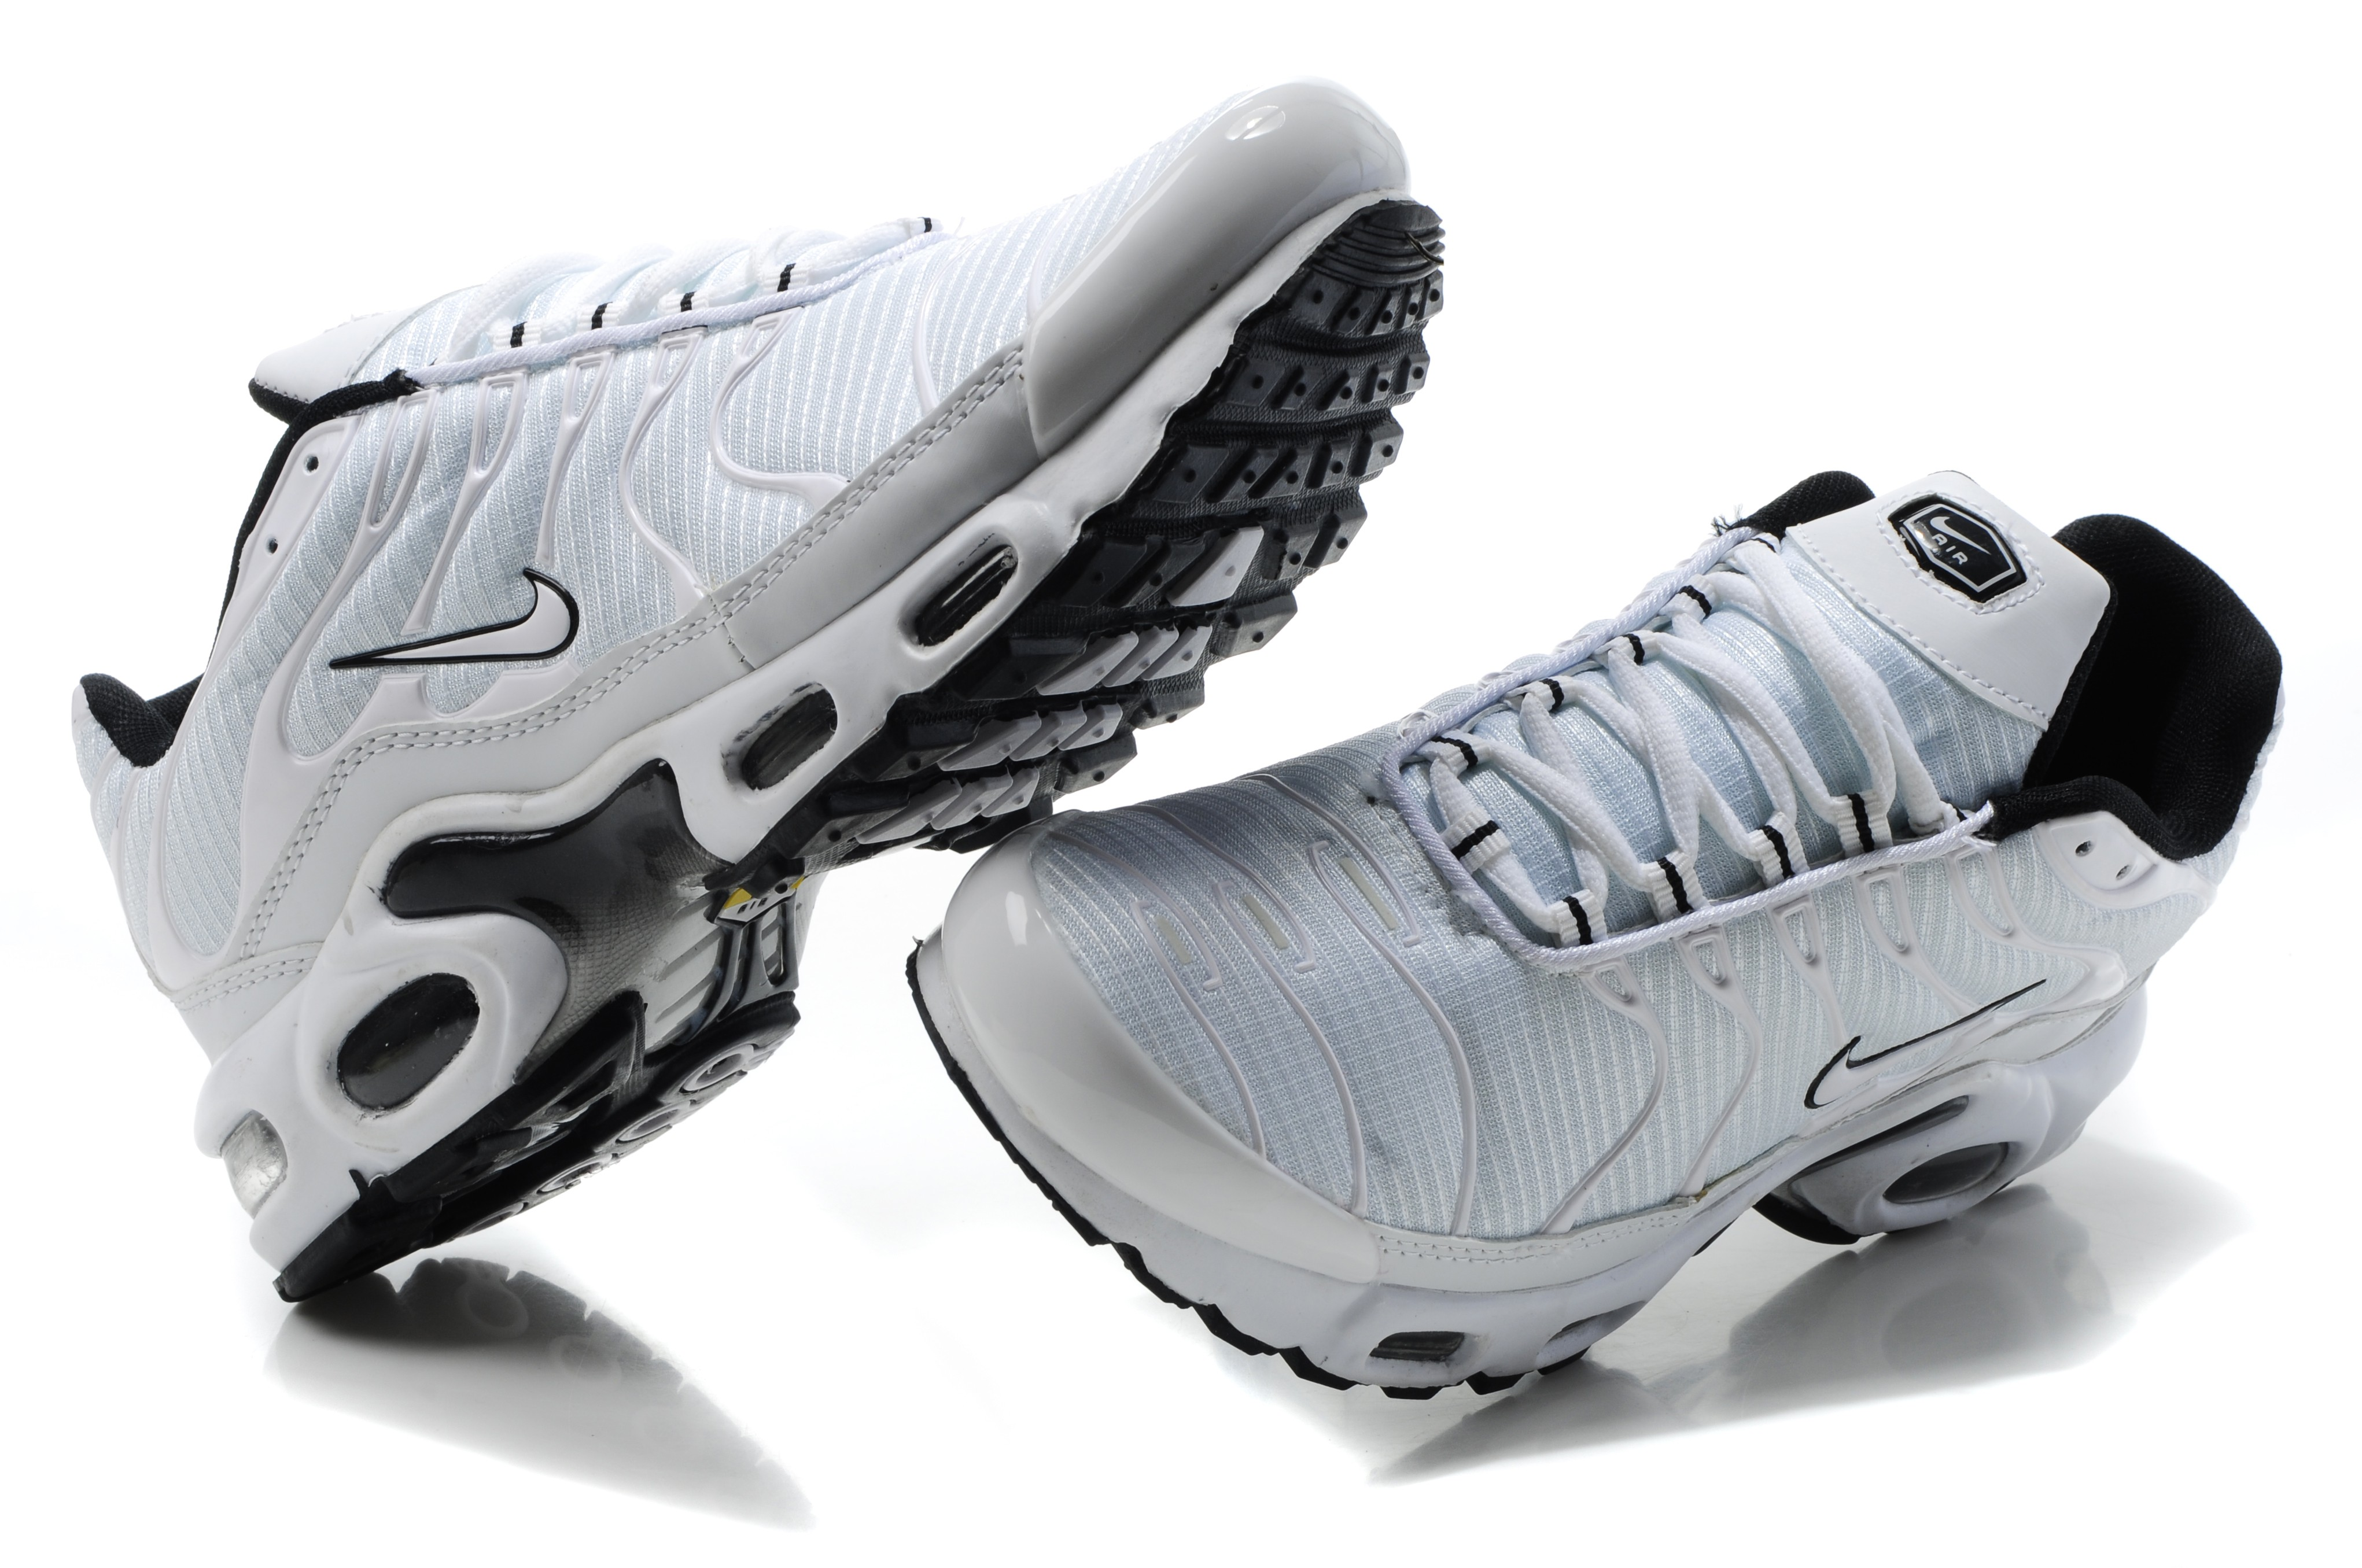 free shipping 66c0b 3b757 Nike TN - grossiste chaussure nike tn,chaussure requin pas cher ...